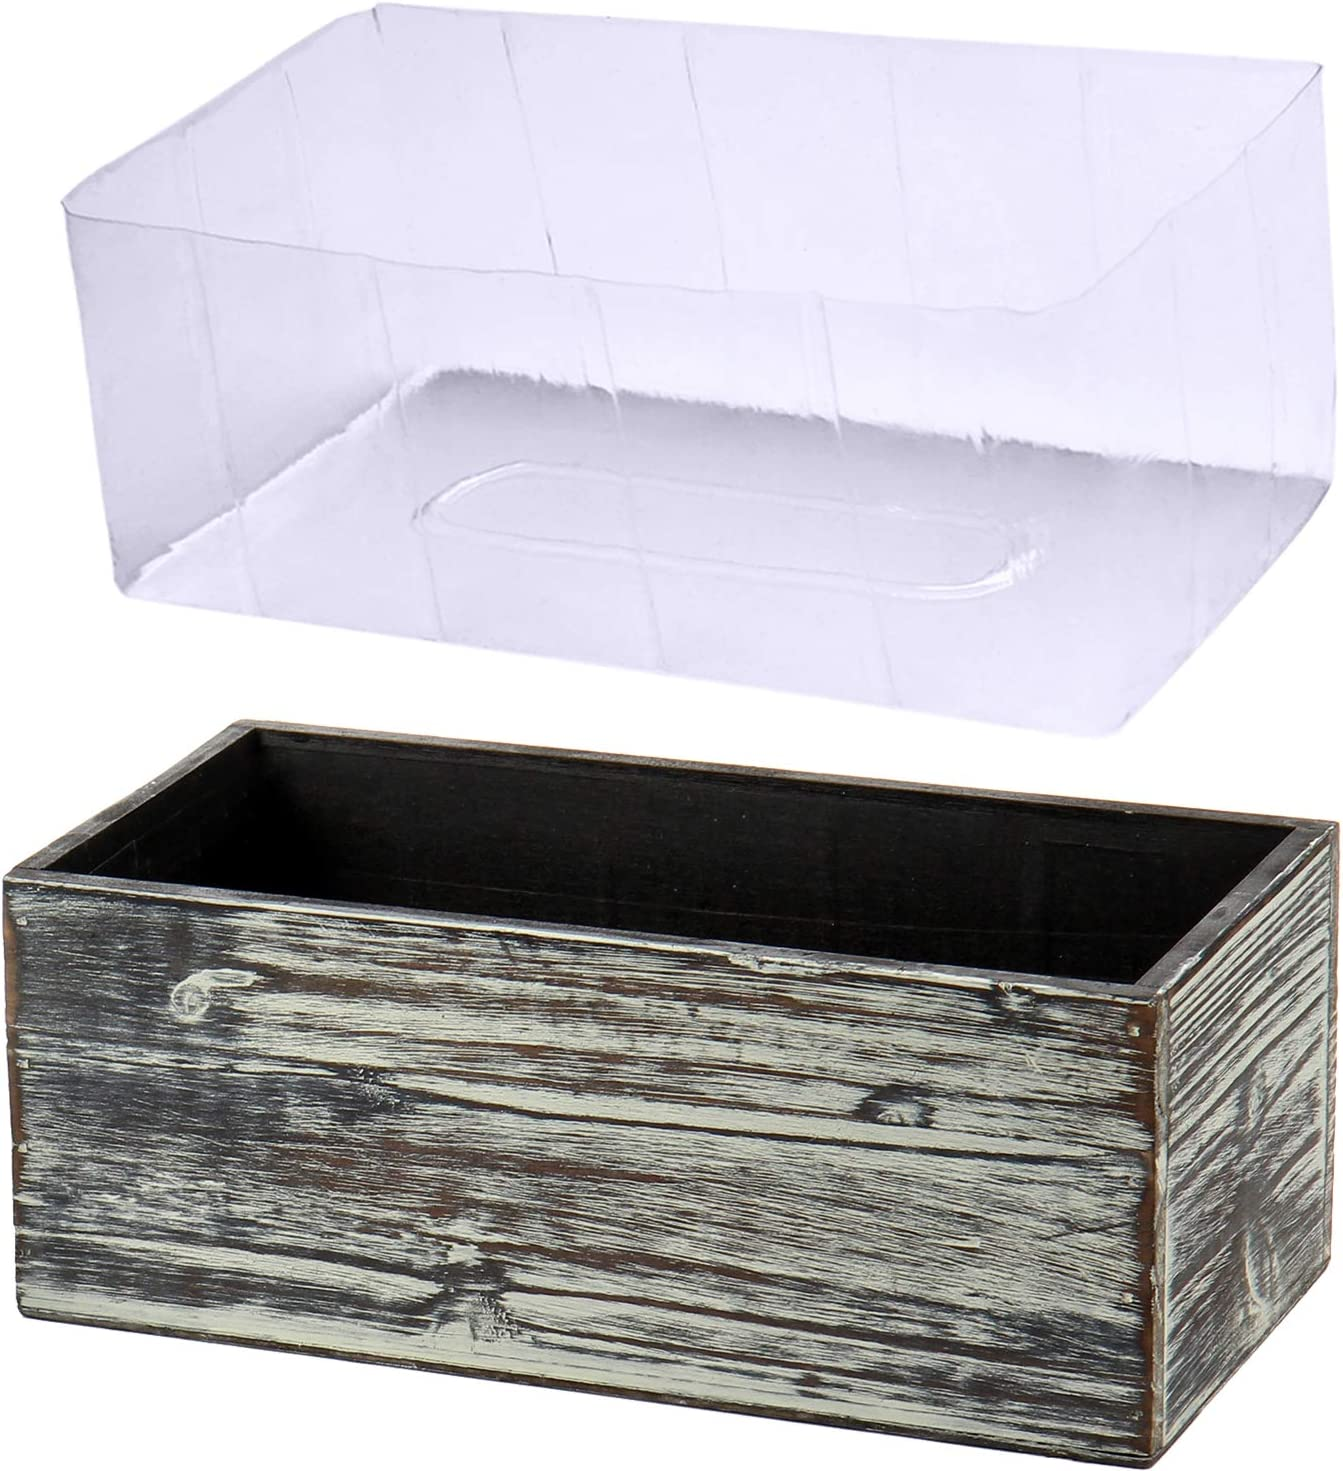 Wood Planter Box Wood Rectangular Planter Whitewashed Wooden Planter Boxes Indoor Decorative Rustic Wooden Box with Inner Plastic Box Floral Boxes for Window Succulent Herb